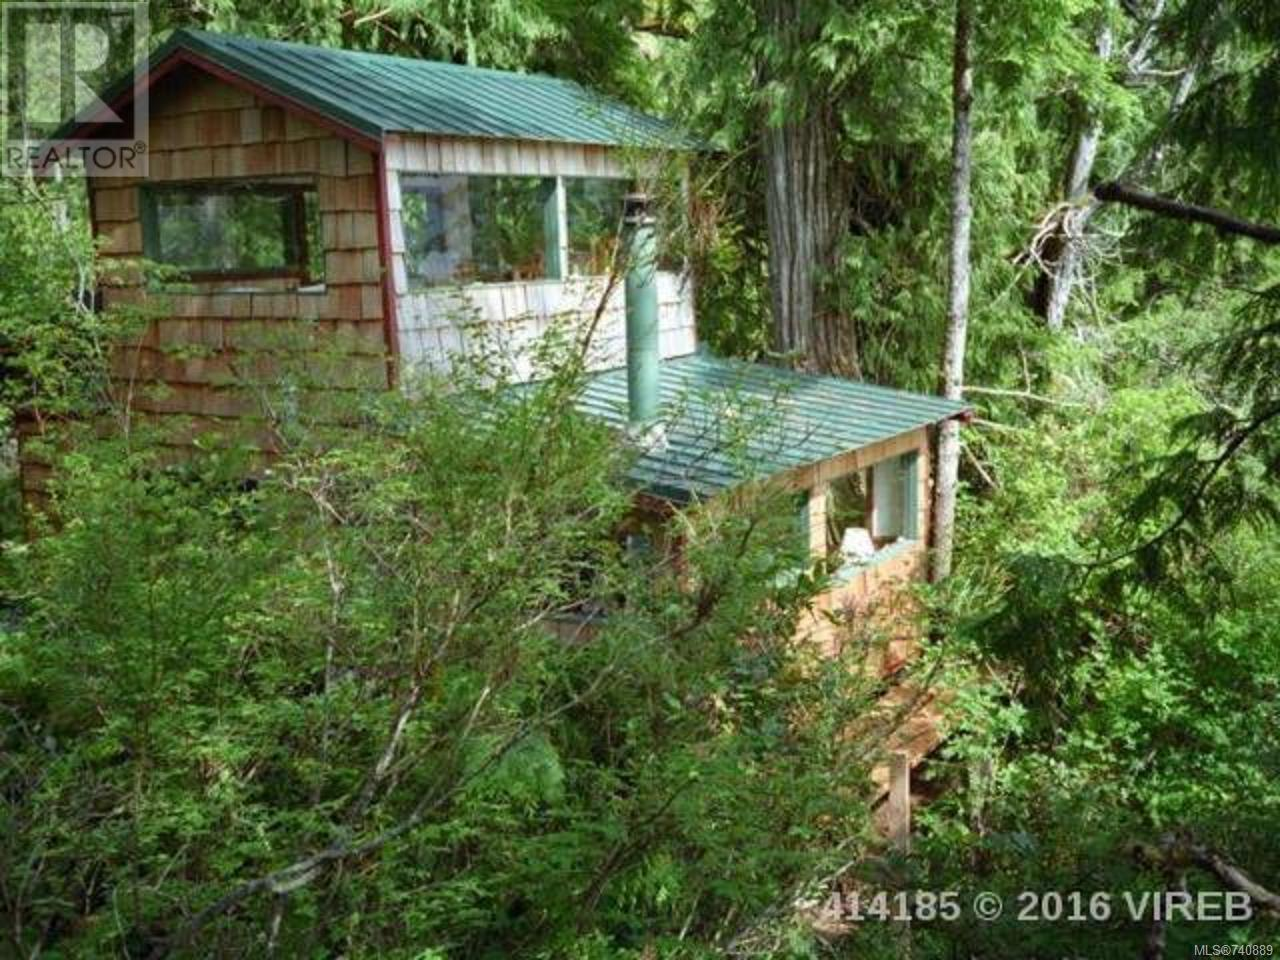 MLS® #740889 - Tofino House For sale Image #3